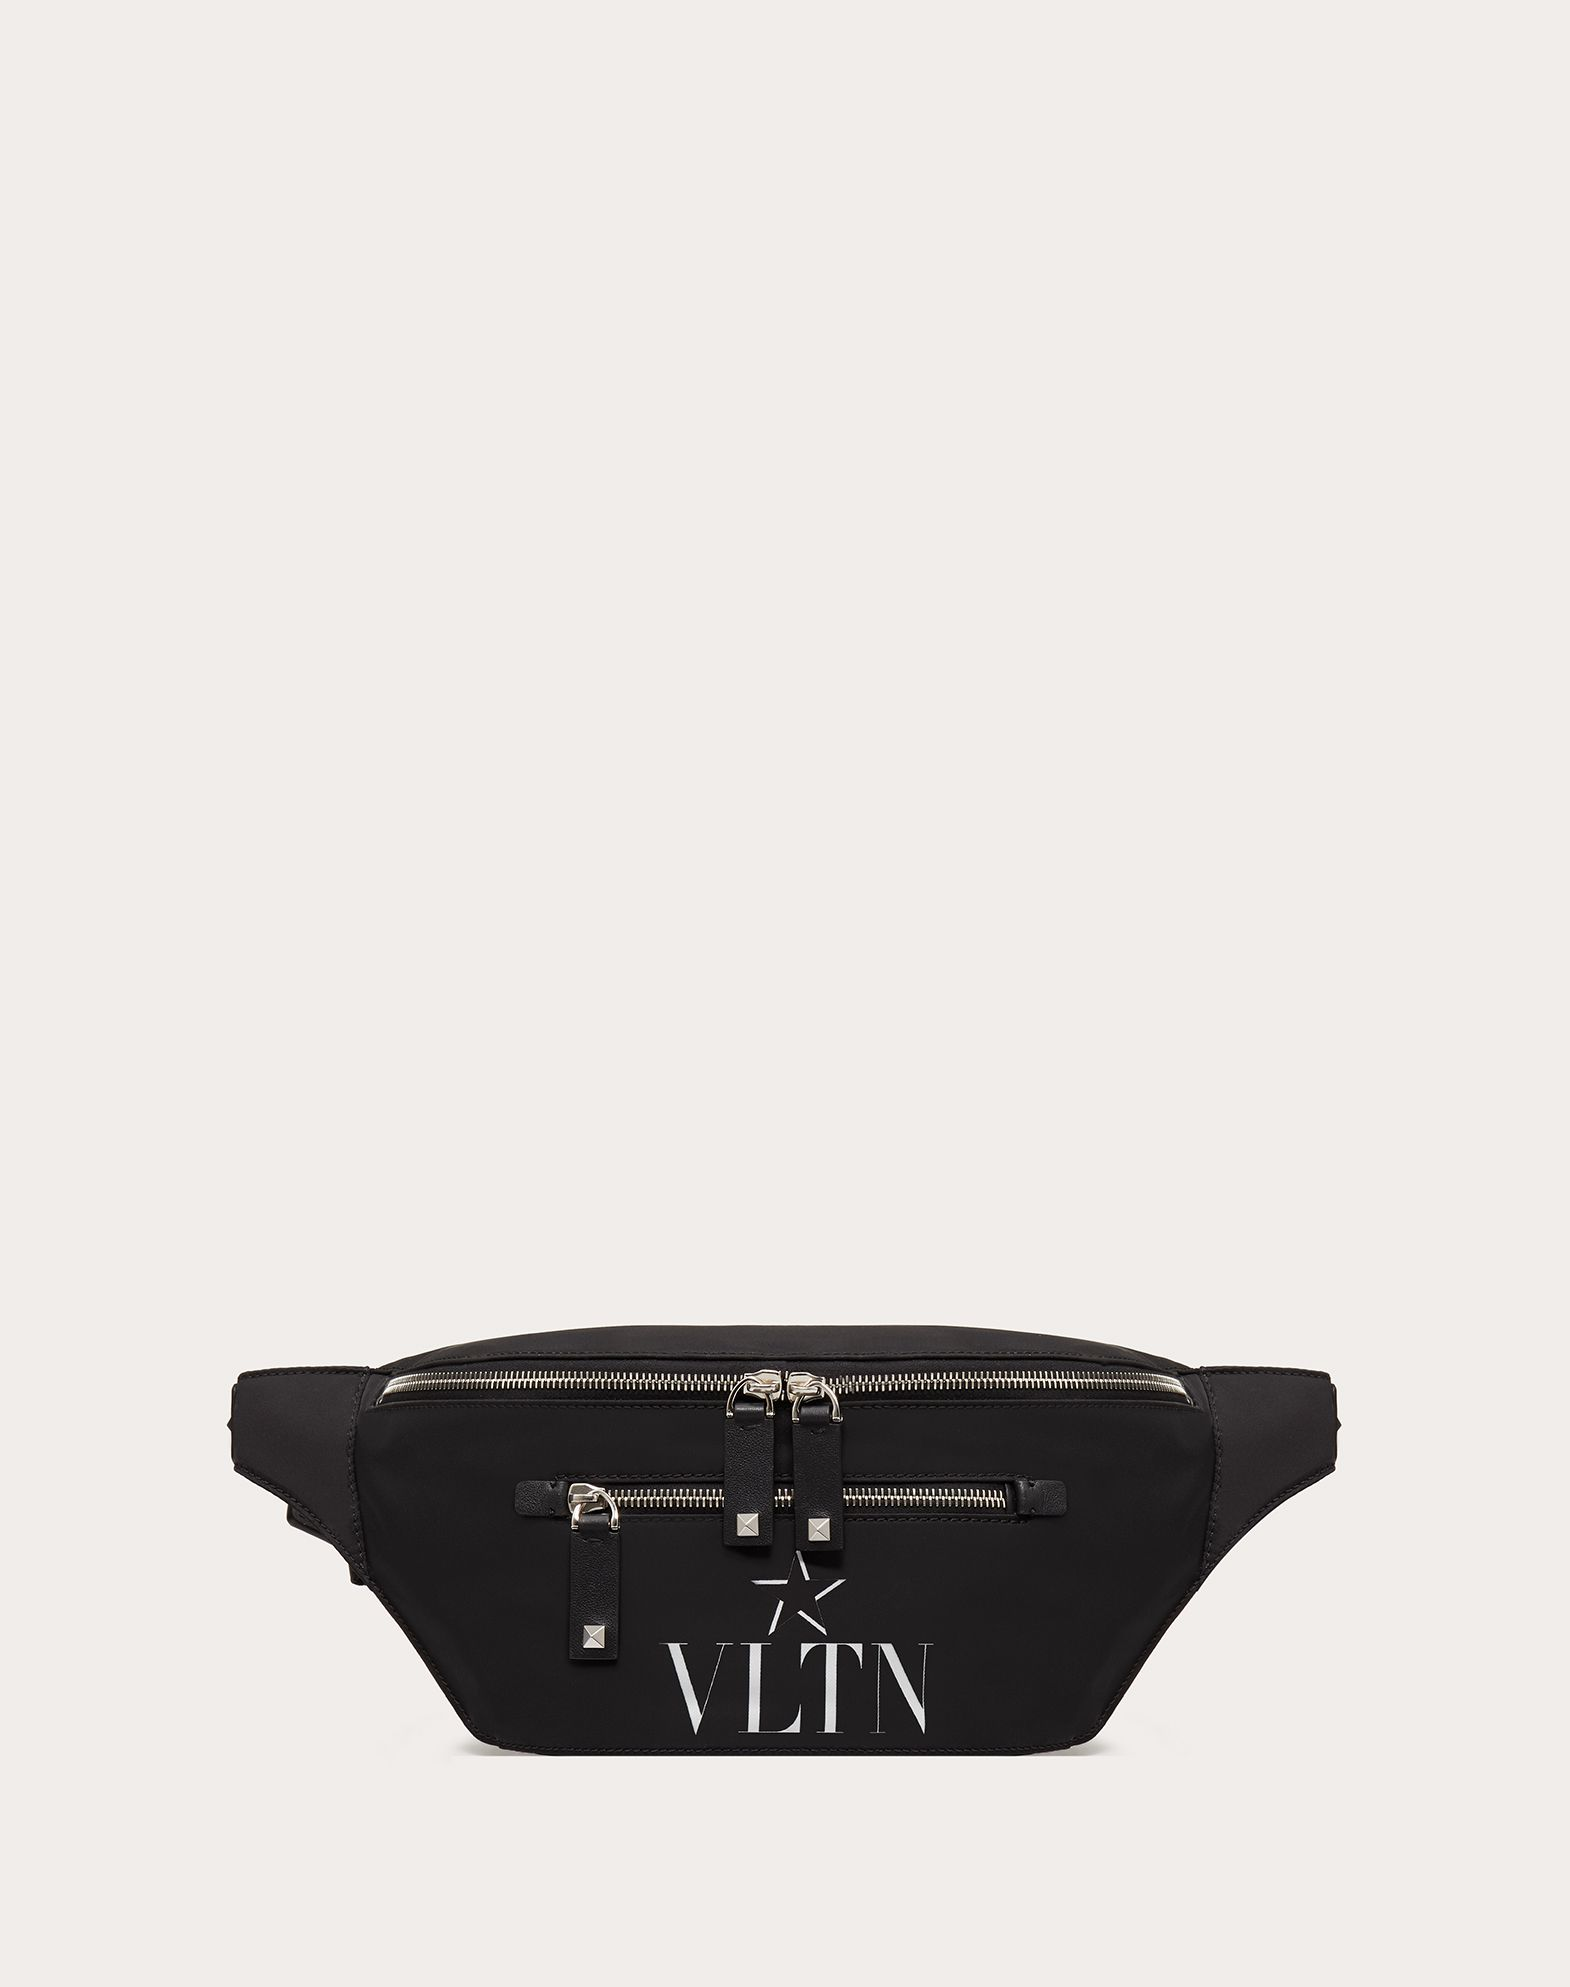 VLTNSTAR Nylon Belt Bag